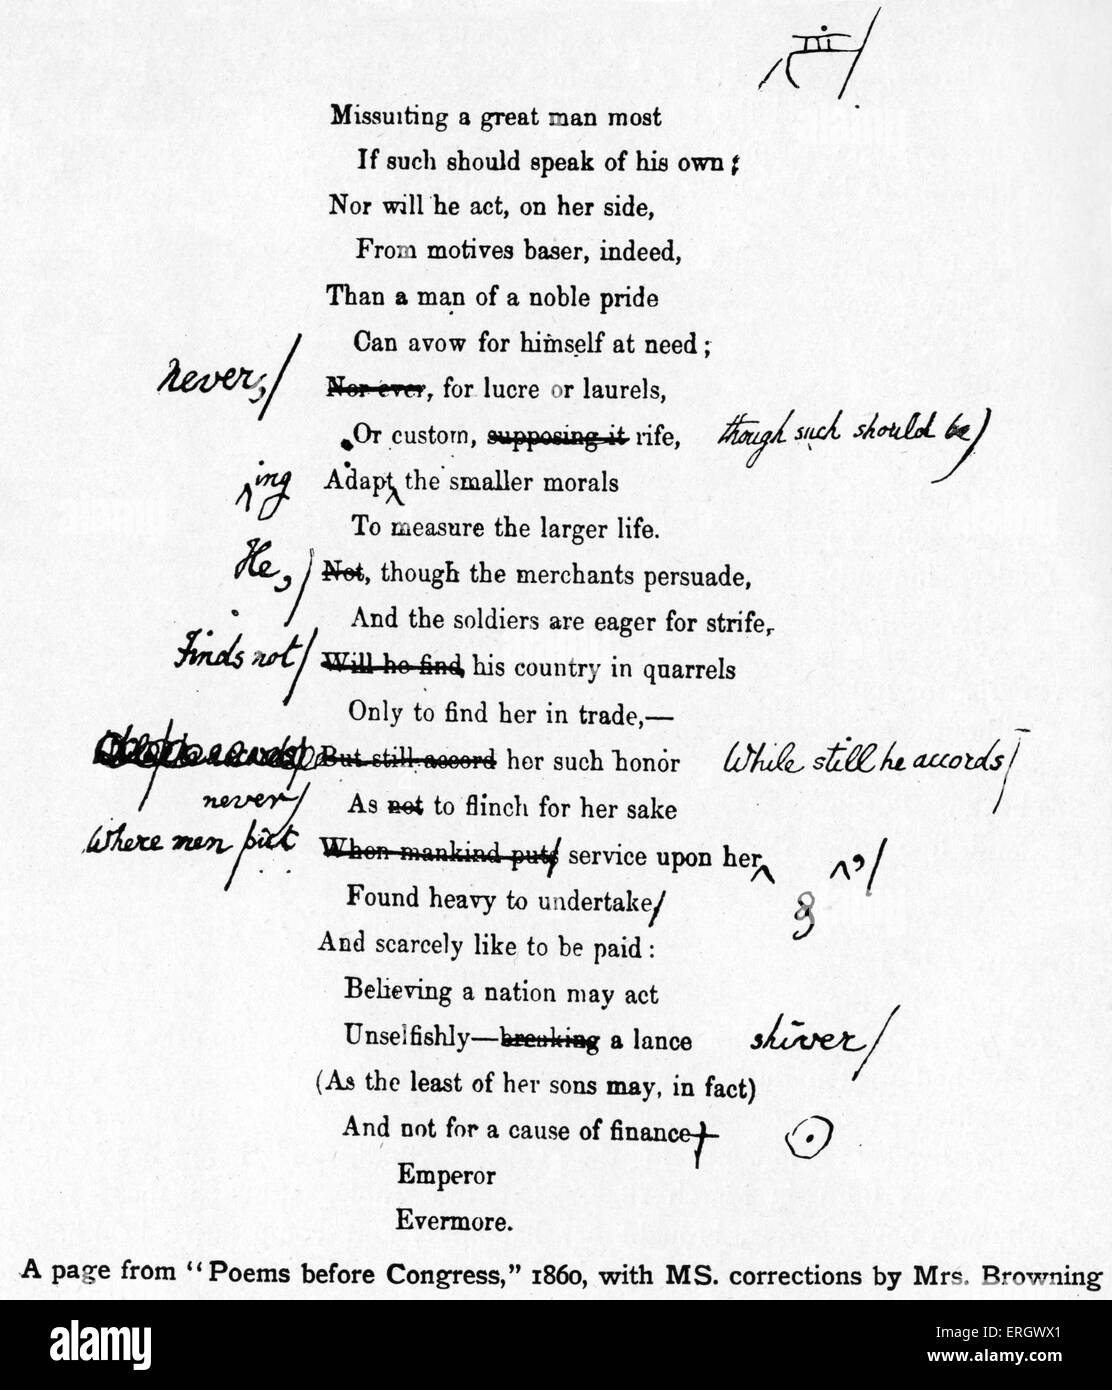 'Poems before Congress' by Elizabeth Barrett Browning. 1860. With her handwritten manuscript corrections. - Stock Image